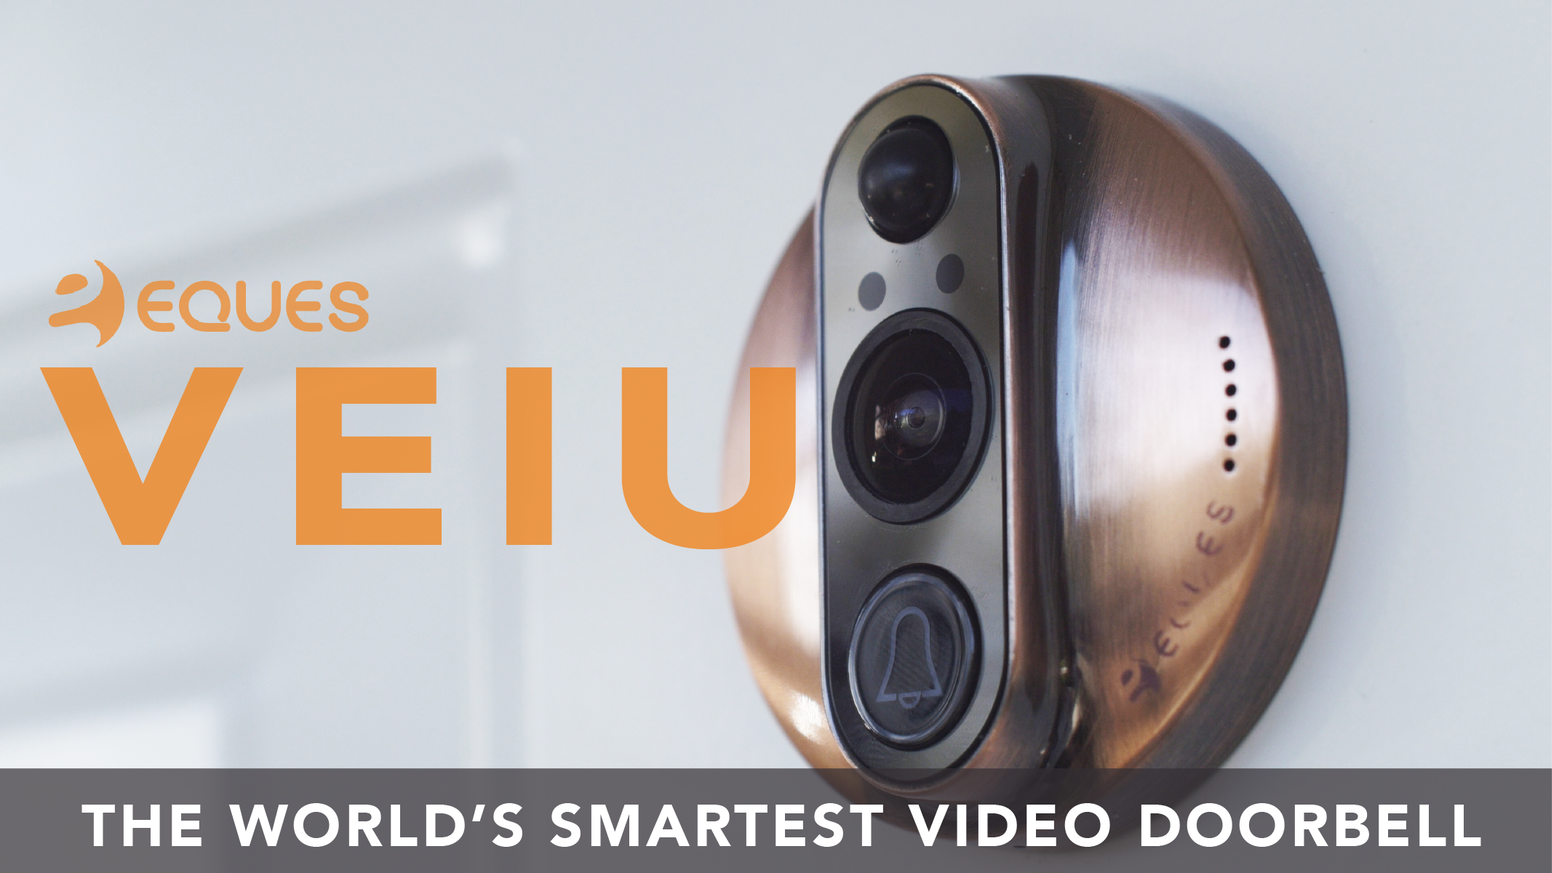 Protect your home from anywhere with the world's smartest video doorbell: VEIU.